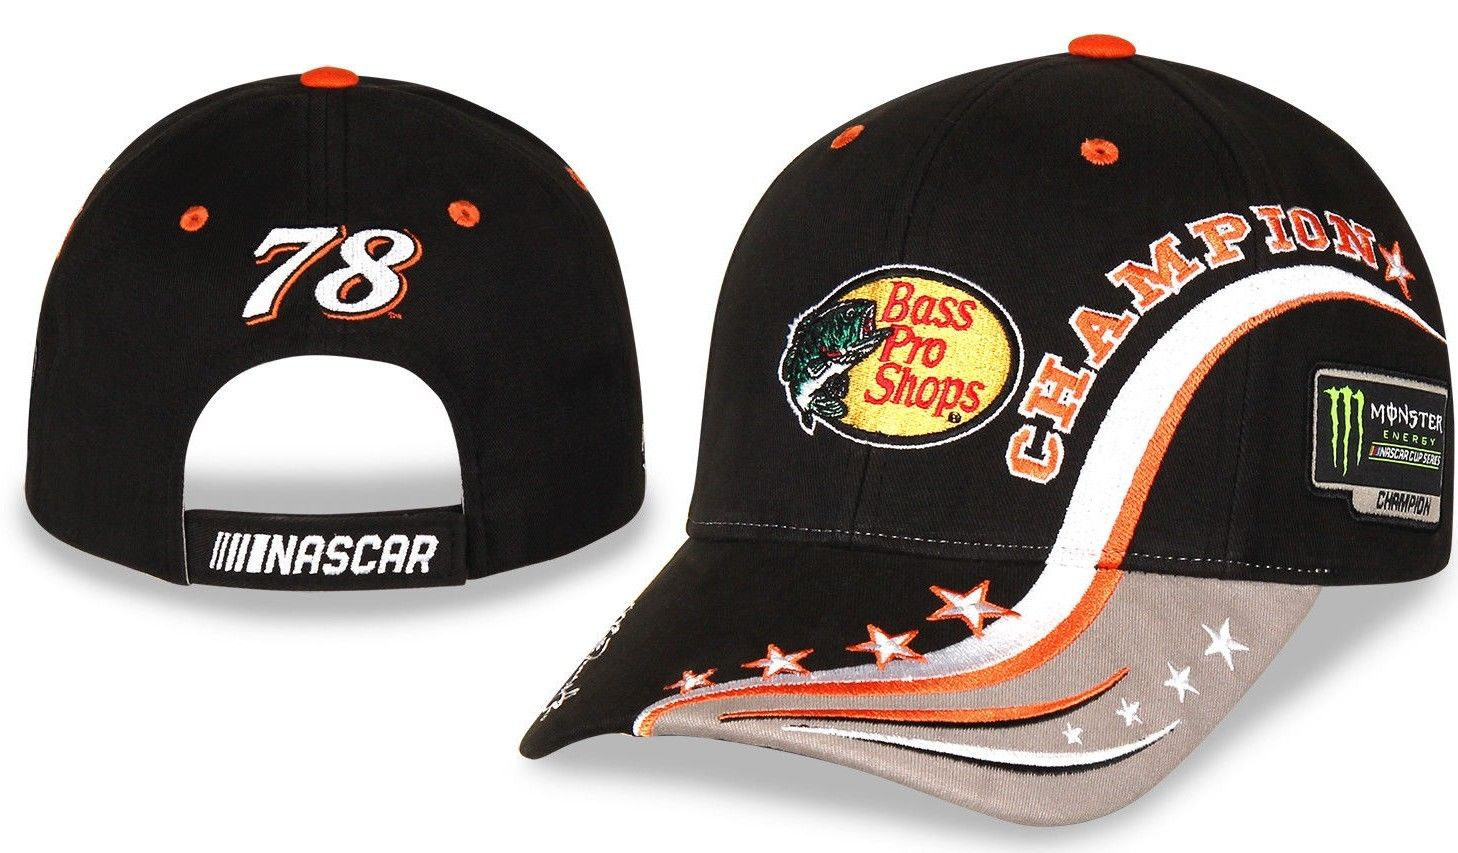 2017 Martin Truex Jr Monster Energy Champion Bass Pro Element hat